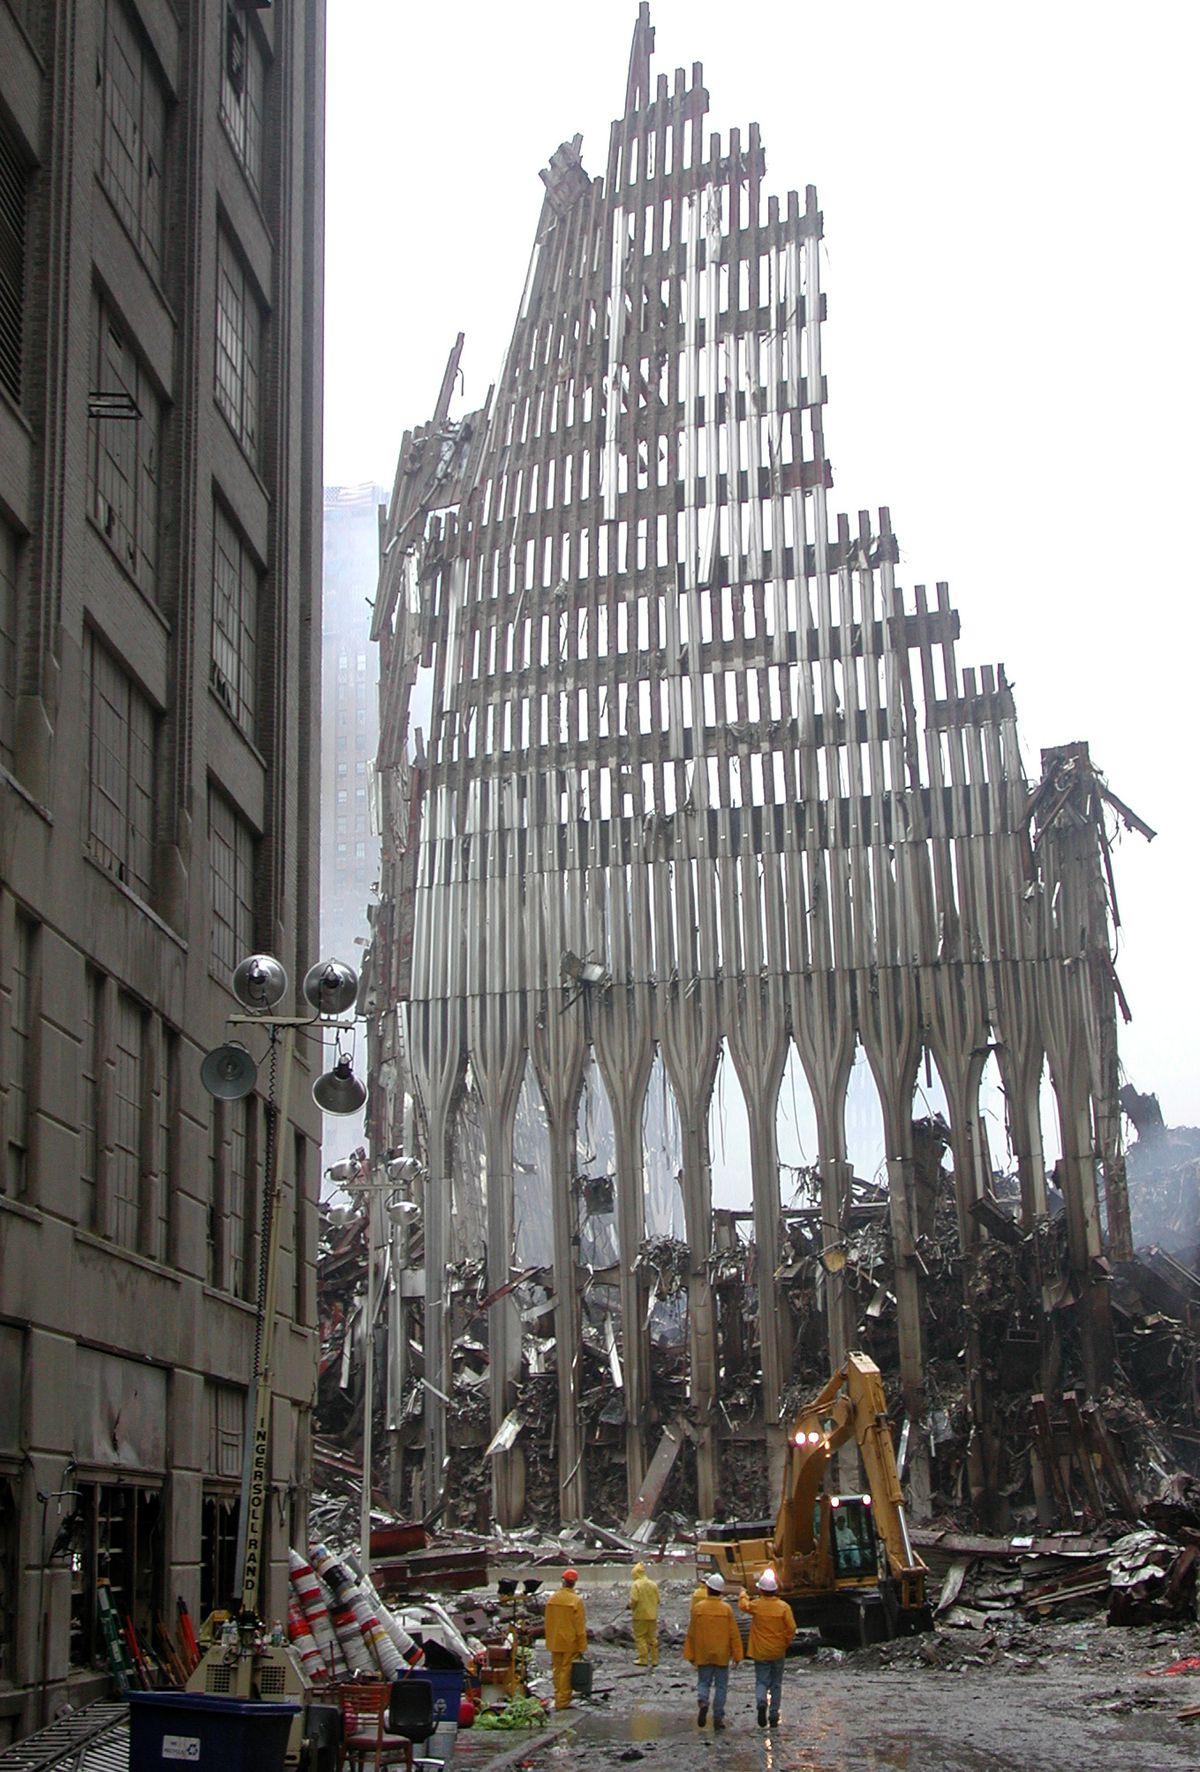 Part of the World Trade Center on 9/11